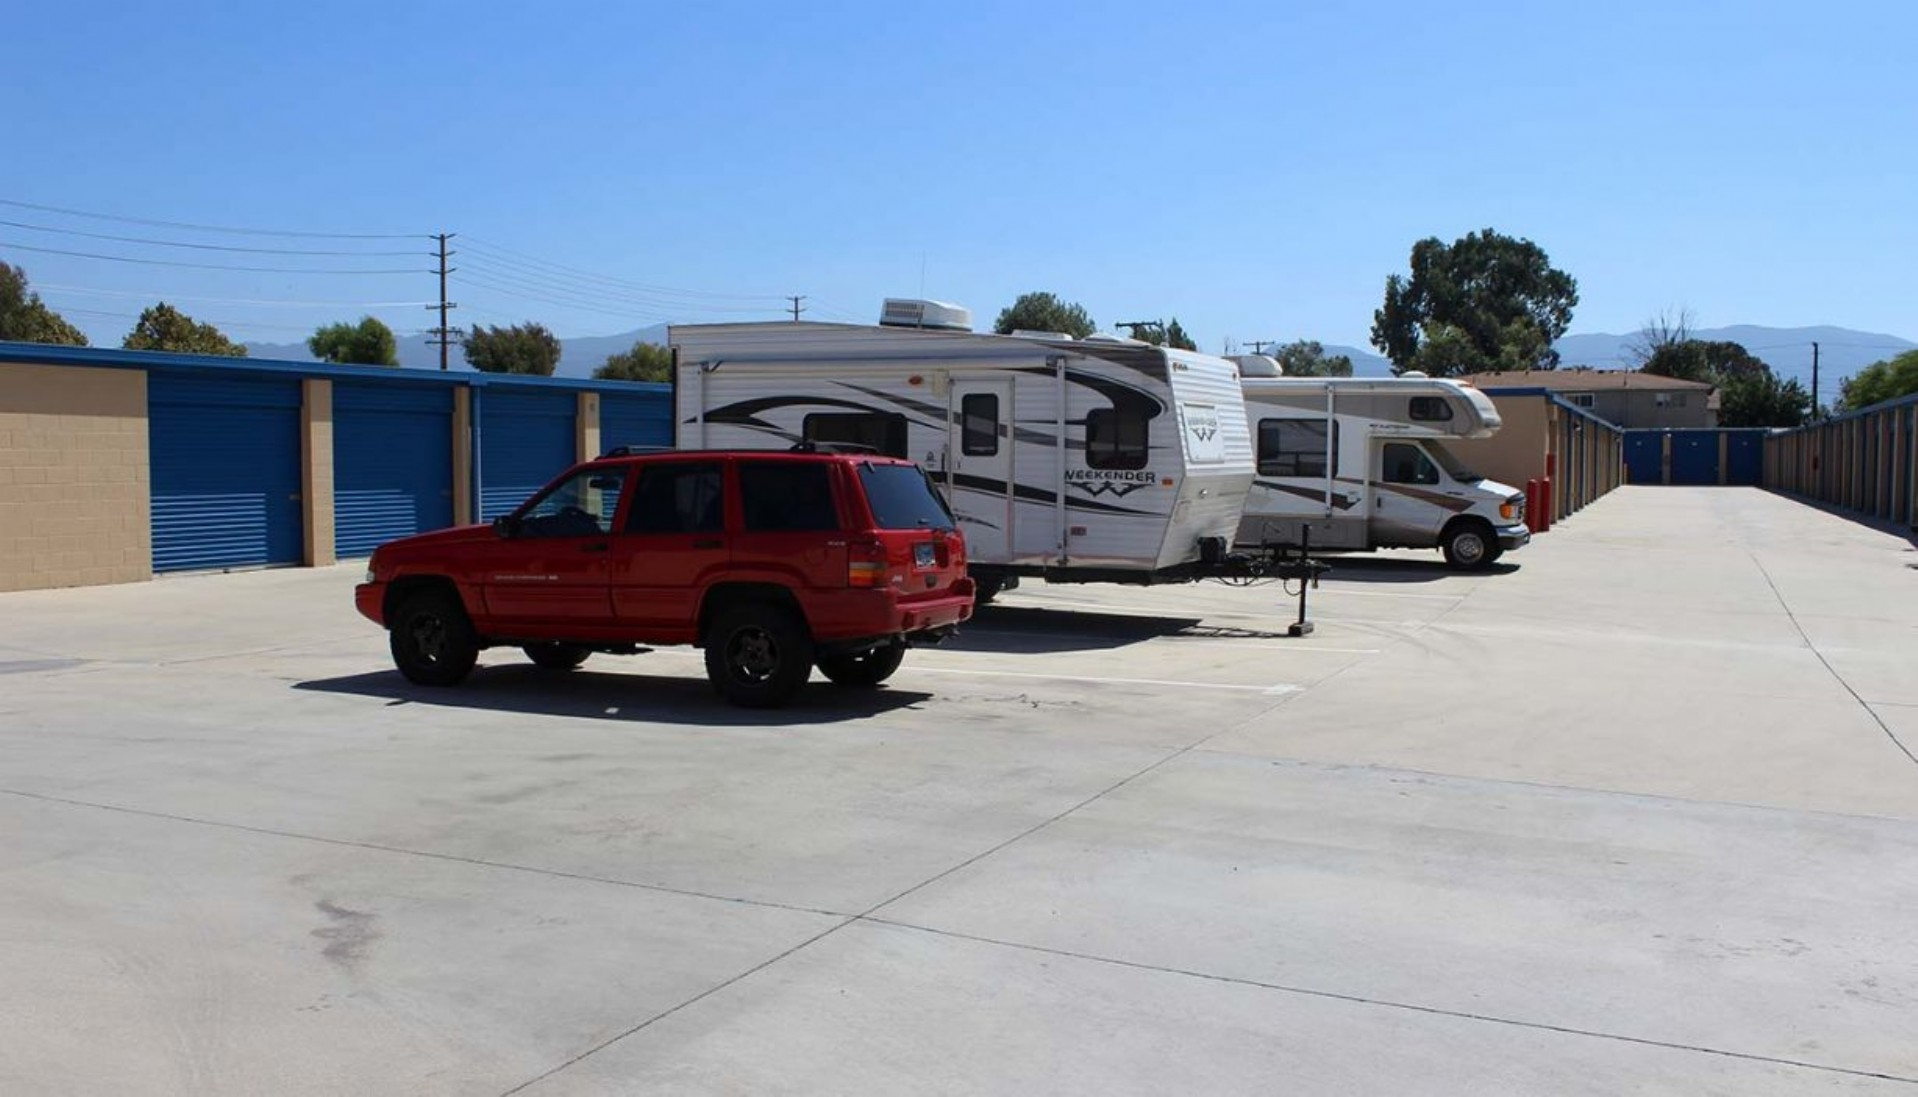 An SUV, travel trailer and small RV parked in vehicle storage spaces